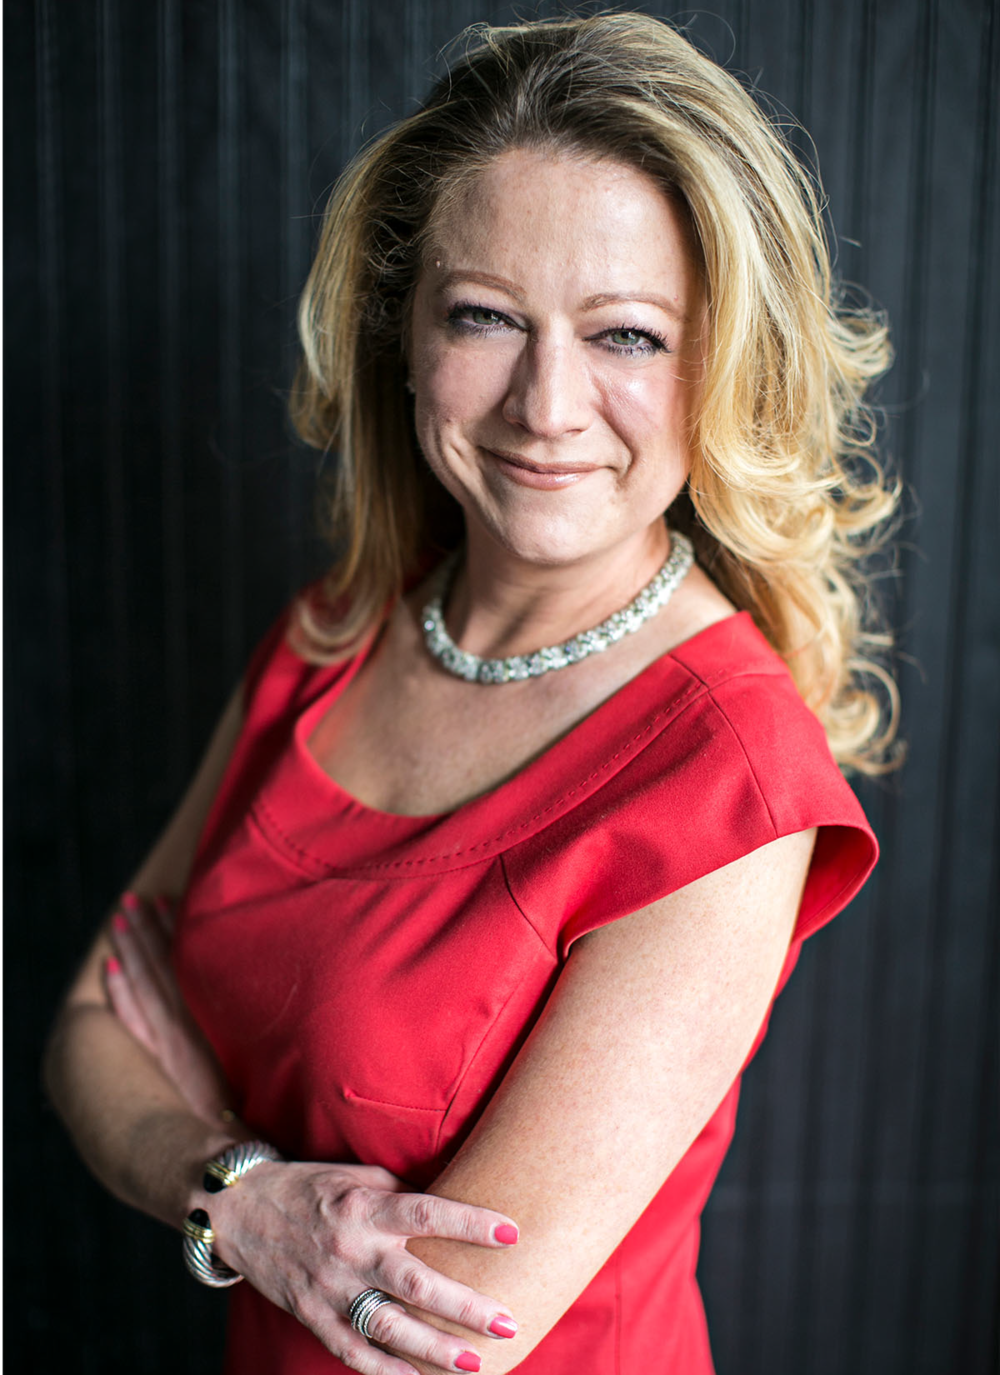 With more than 20 years of experience working with premier restaurants, hotels and private clubs across the country, Leigh Ann Miller brings wine expertise, creativity and leadership to her role as General Manager at The Iberian Pig.  Born in Palm Beach, FL., Leigh Ann grew up with a fond appreciation for the arts, particularly music. After attending Palm Beach County School of the Arts, she performed classically and with major recording artists such as Clarence Clemons and Wynton Marsalis. While pursuing her love of music, she found a second love for the hospitality industry and studied under well-known wine industry pioneers and master sommeliers in California, Florida and Europe, before finishing her continued education at Cornell University.  In 2010, Leigh Ann joined Castellucci Hospitality Group and became General Manager at The Iberian Pig. Over the last nine years with the restaurant group, she has strived to make her work environment feel like a second home for her team. Her innate passion for people drives her in leading fellow teammates to realize their potential.